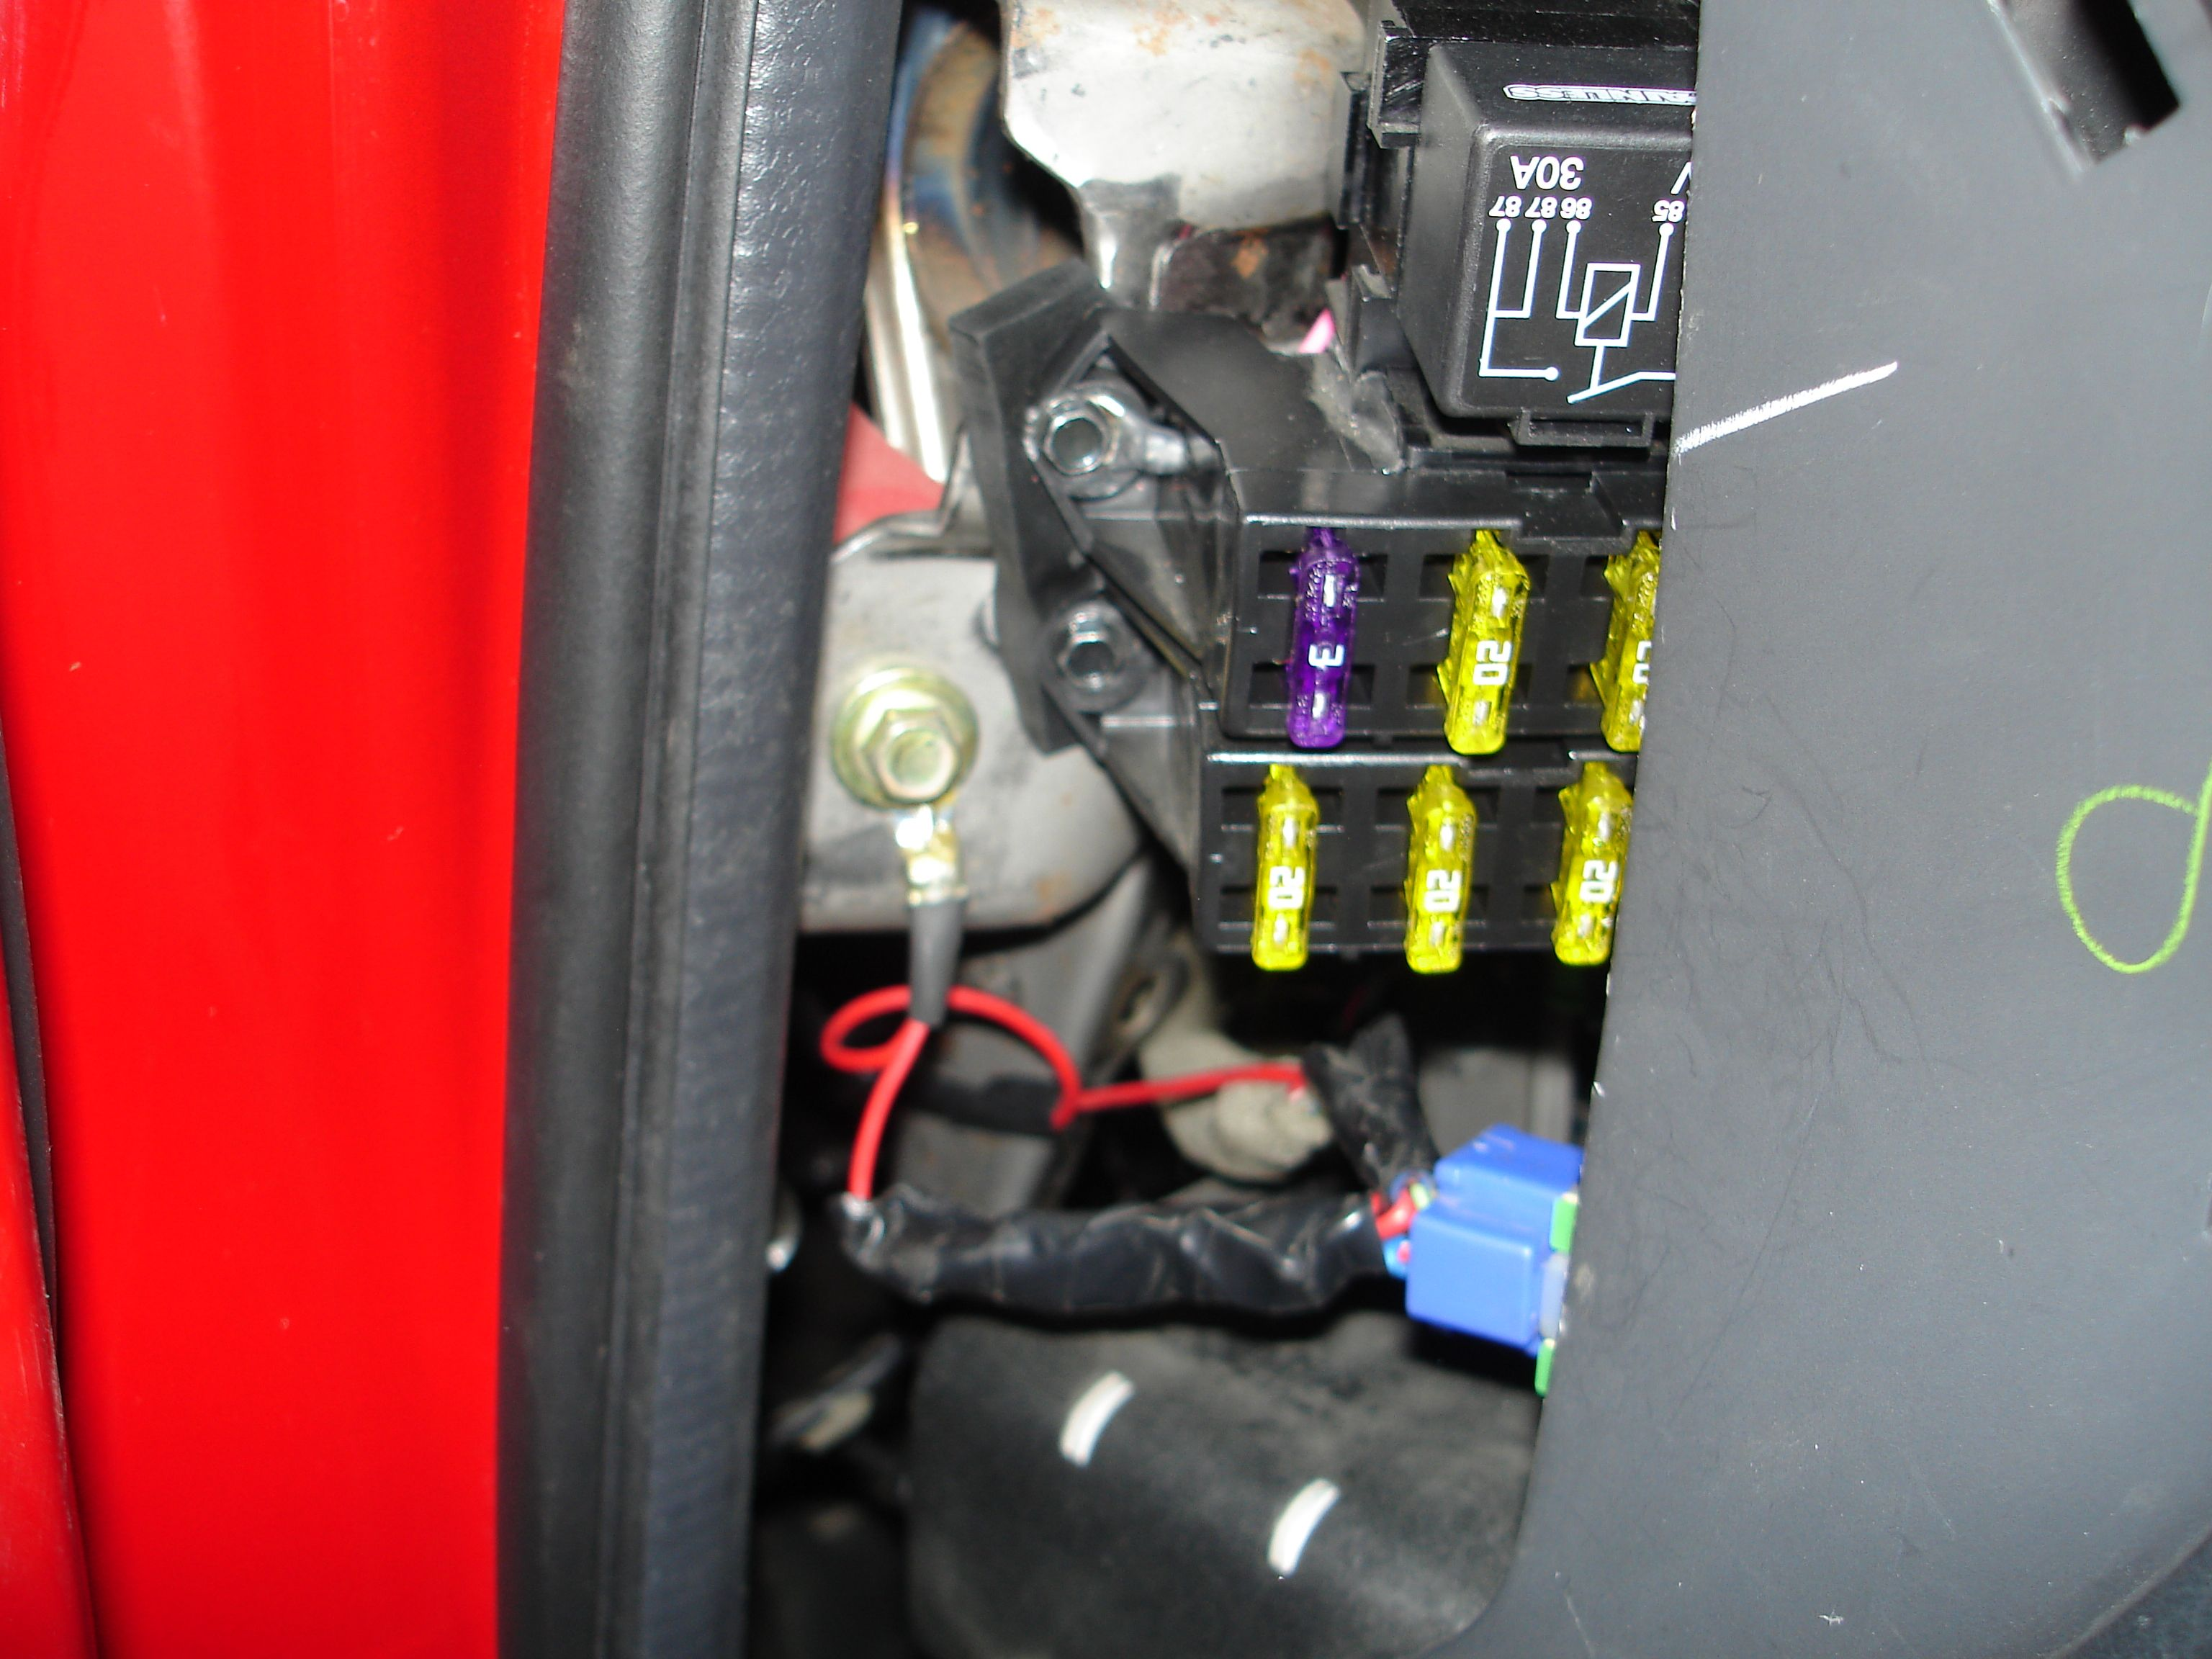 Maxx Mazdas 2011 Build Thread Beyondca Car Forums Painless Wiring Auxiliary Fuse Block Aux Panel Drivers Side